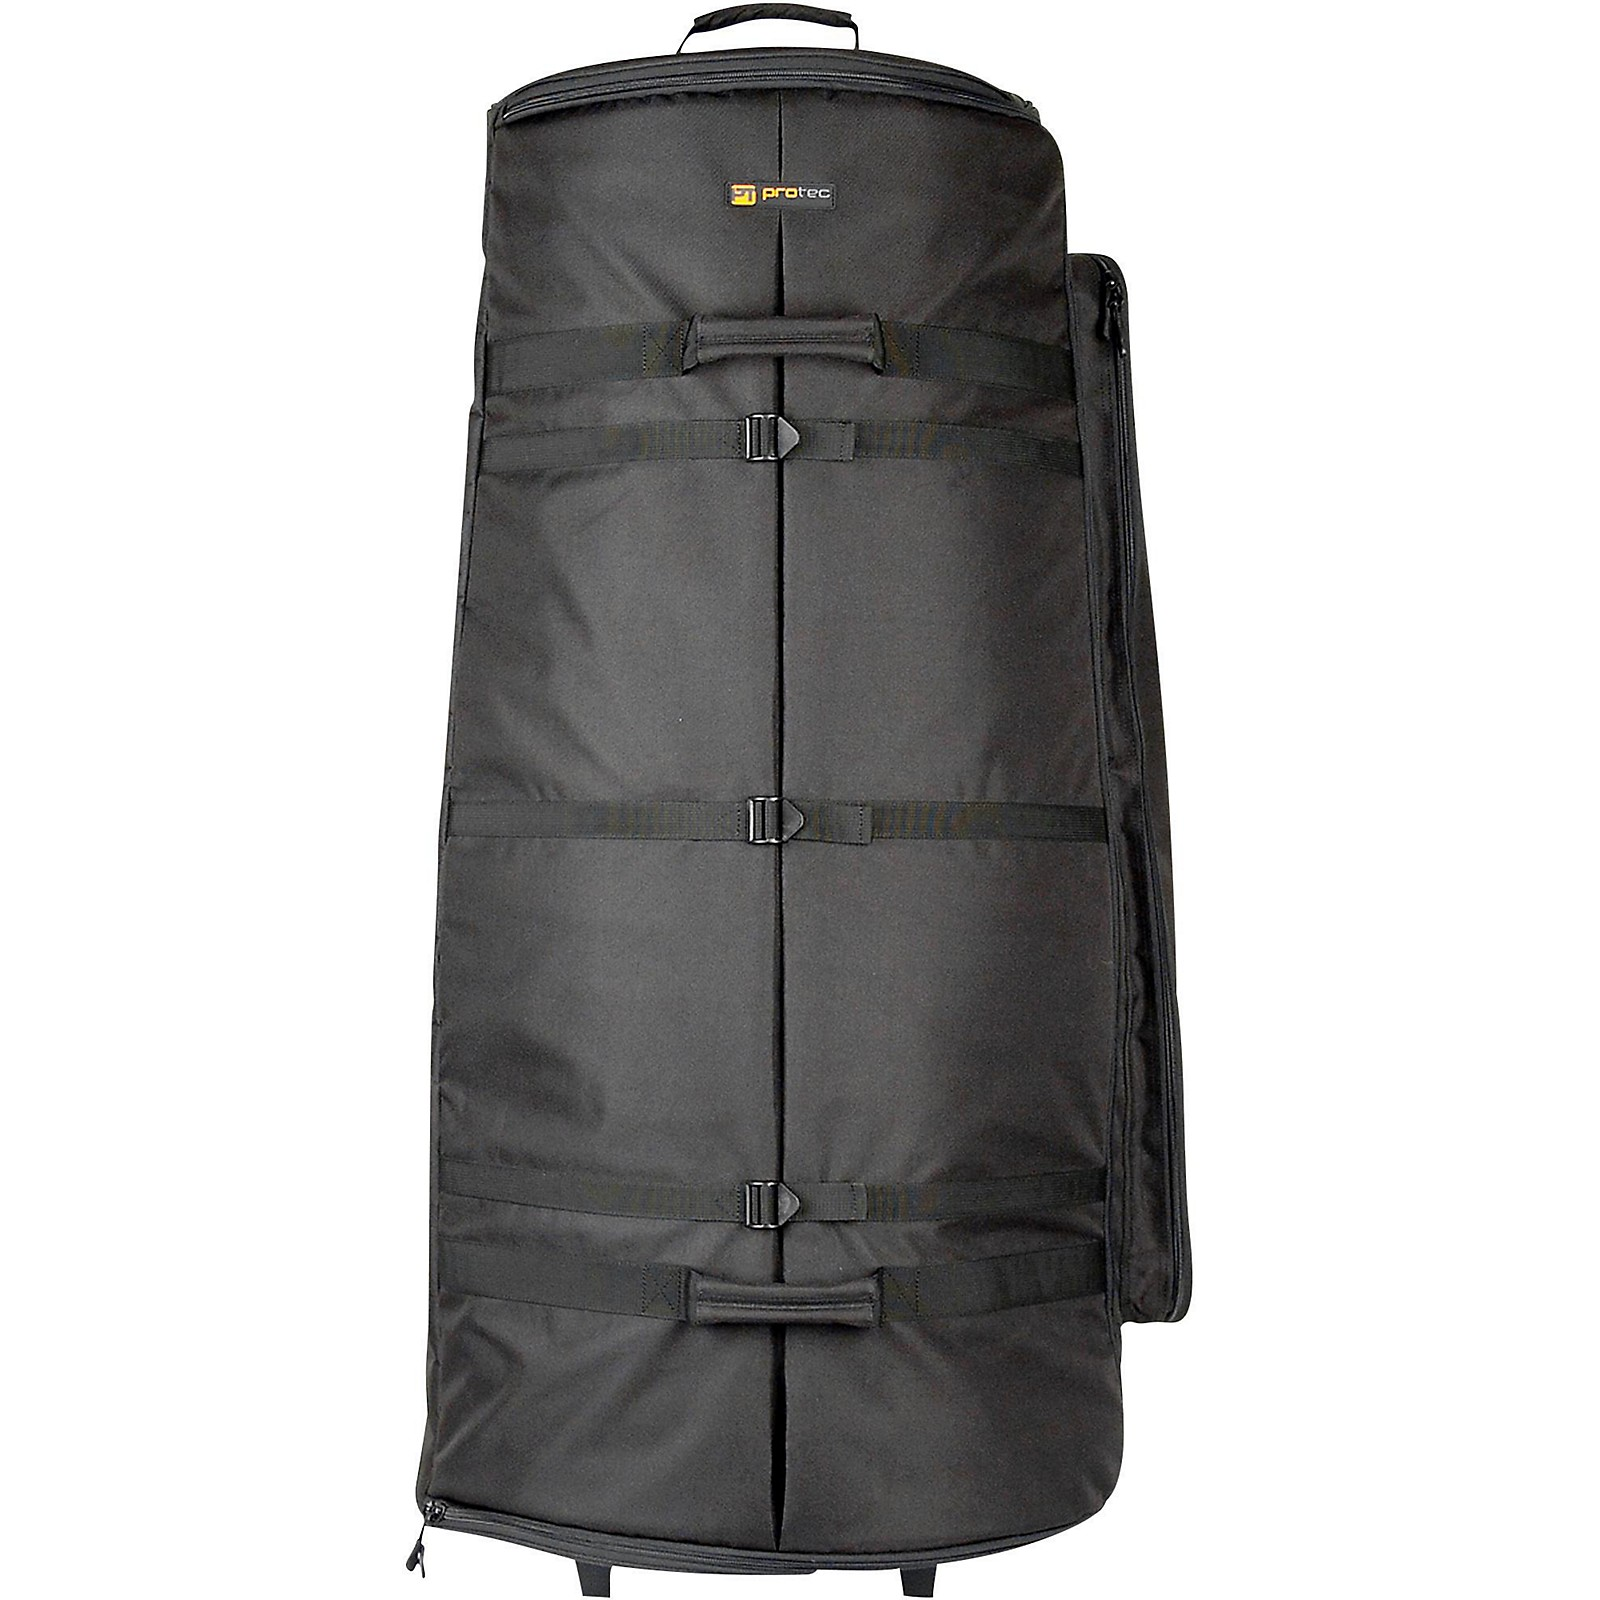 Protec Multi Tom Bag With Wheels